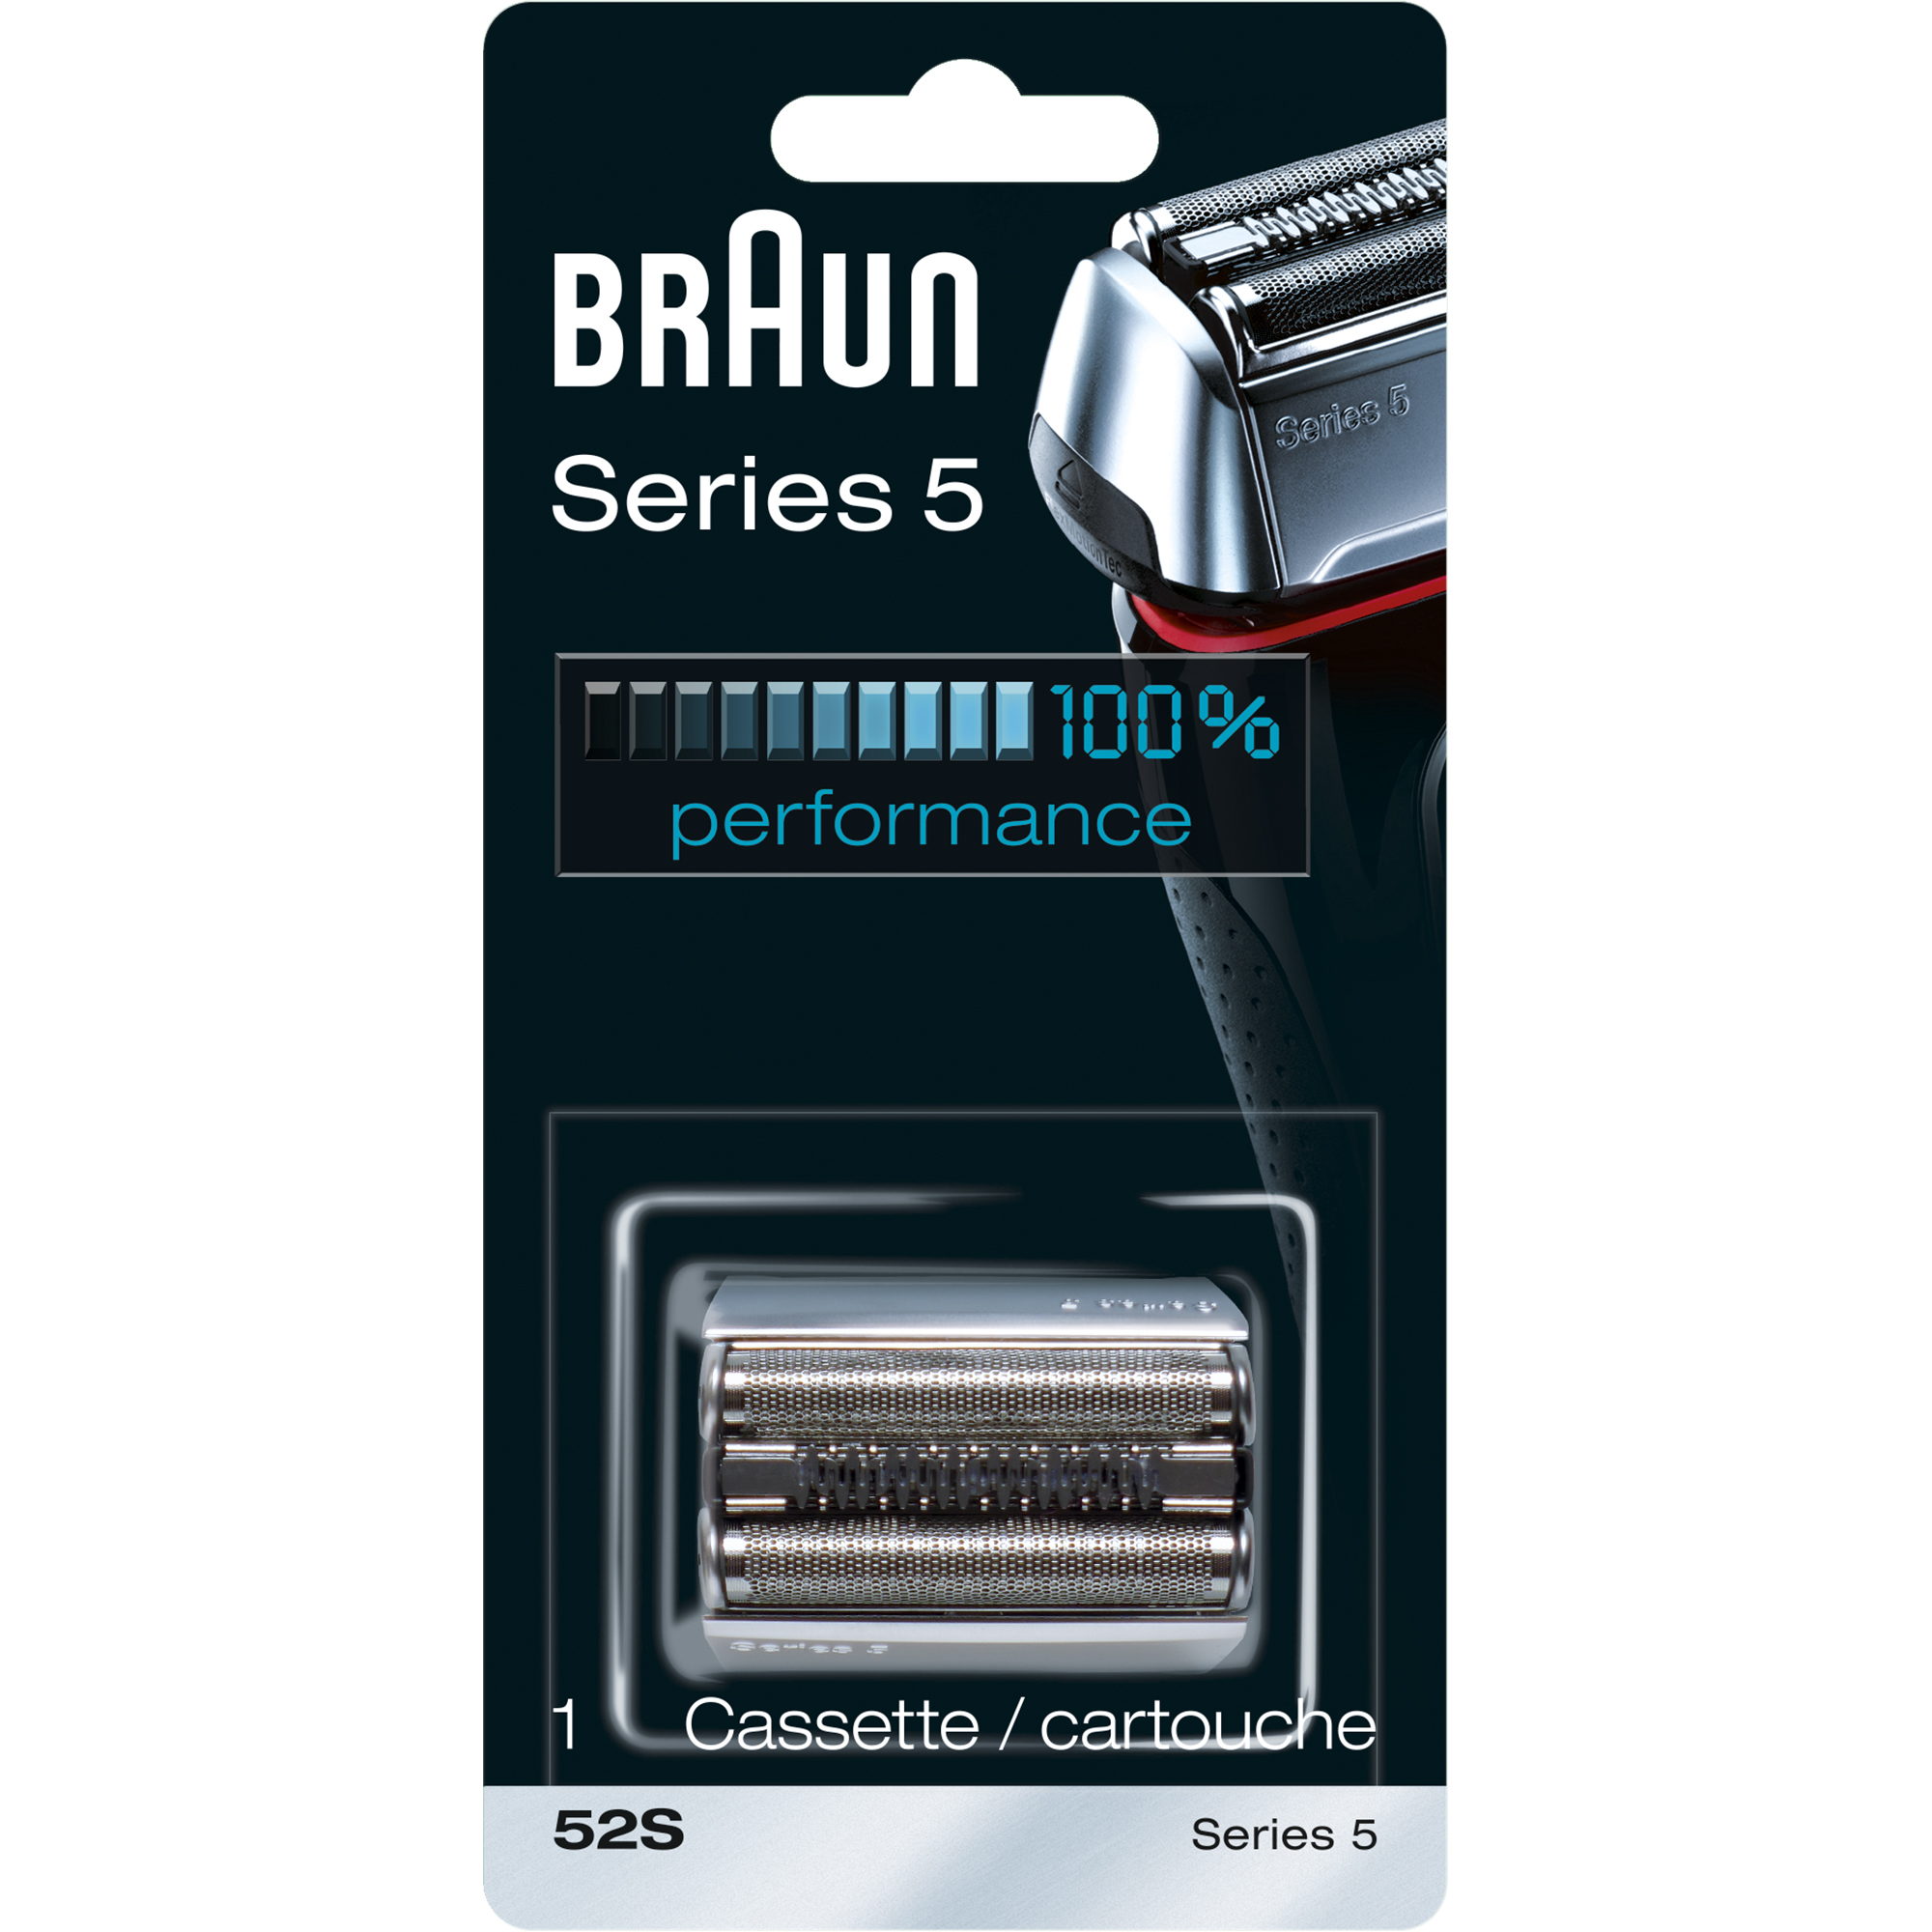 Braun Shaver Replacement Part 52 S Silver - Compatible with Series 5 shavers